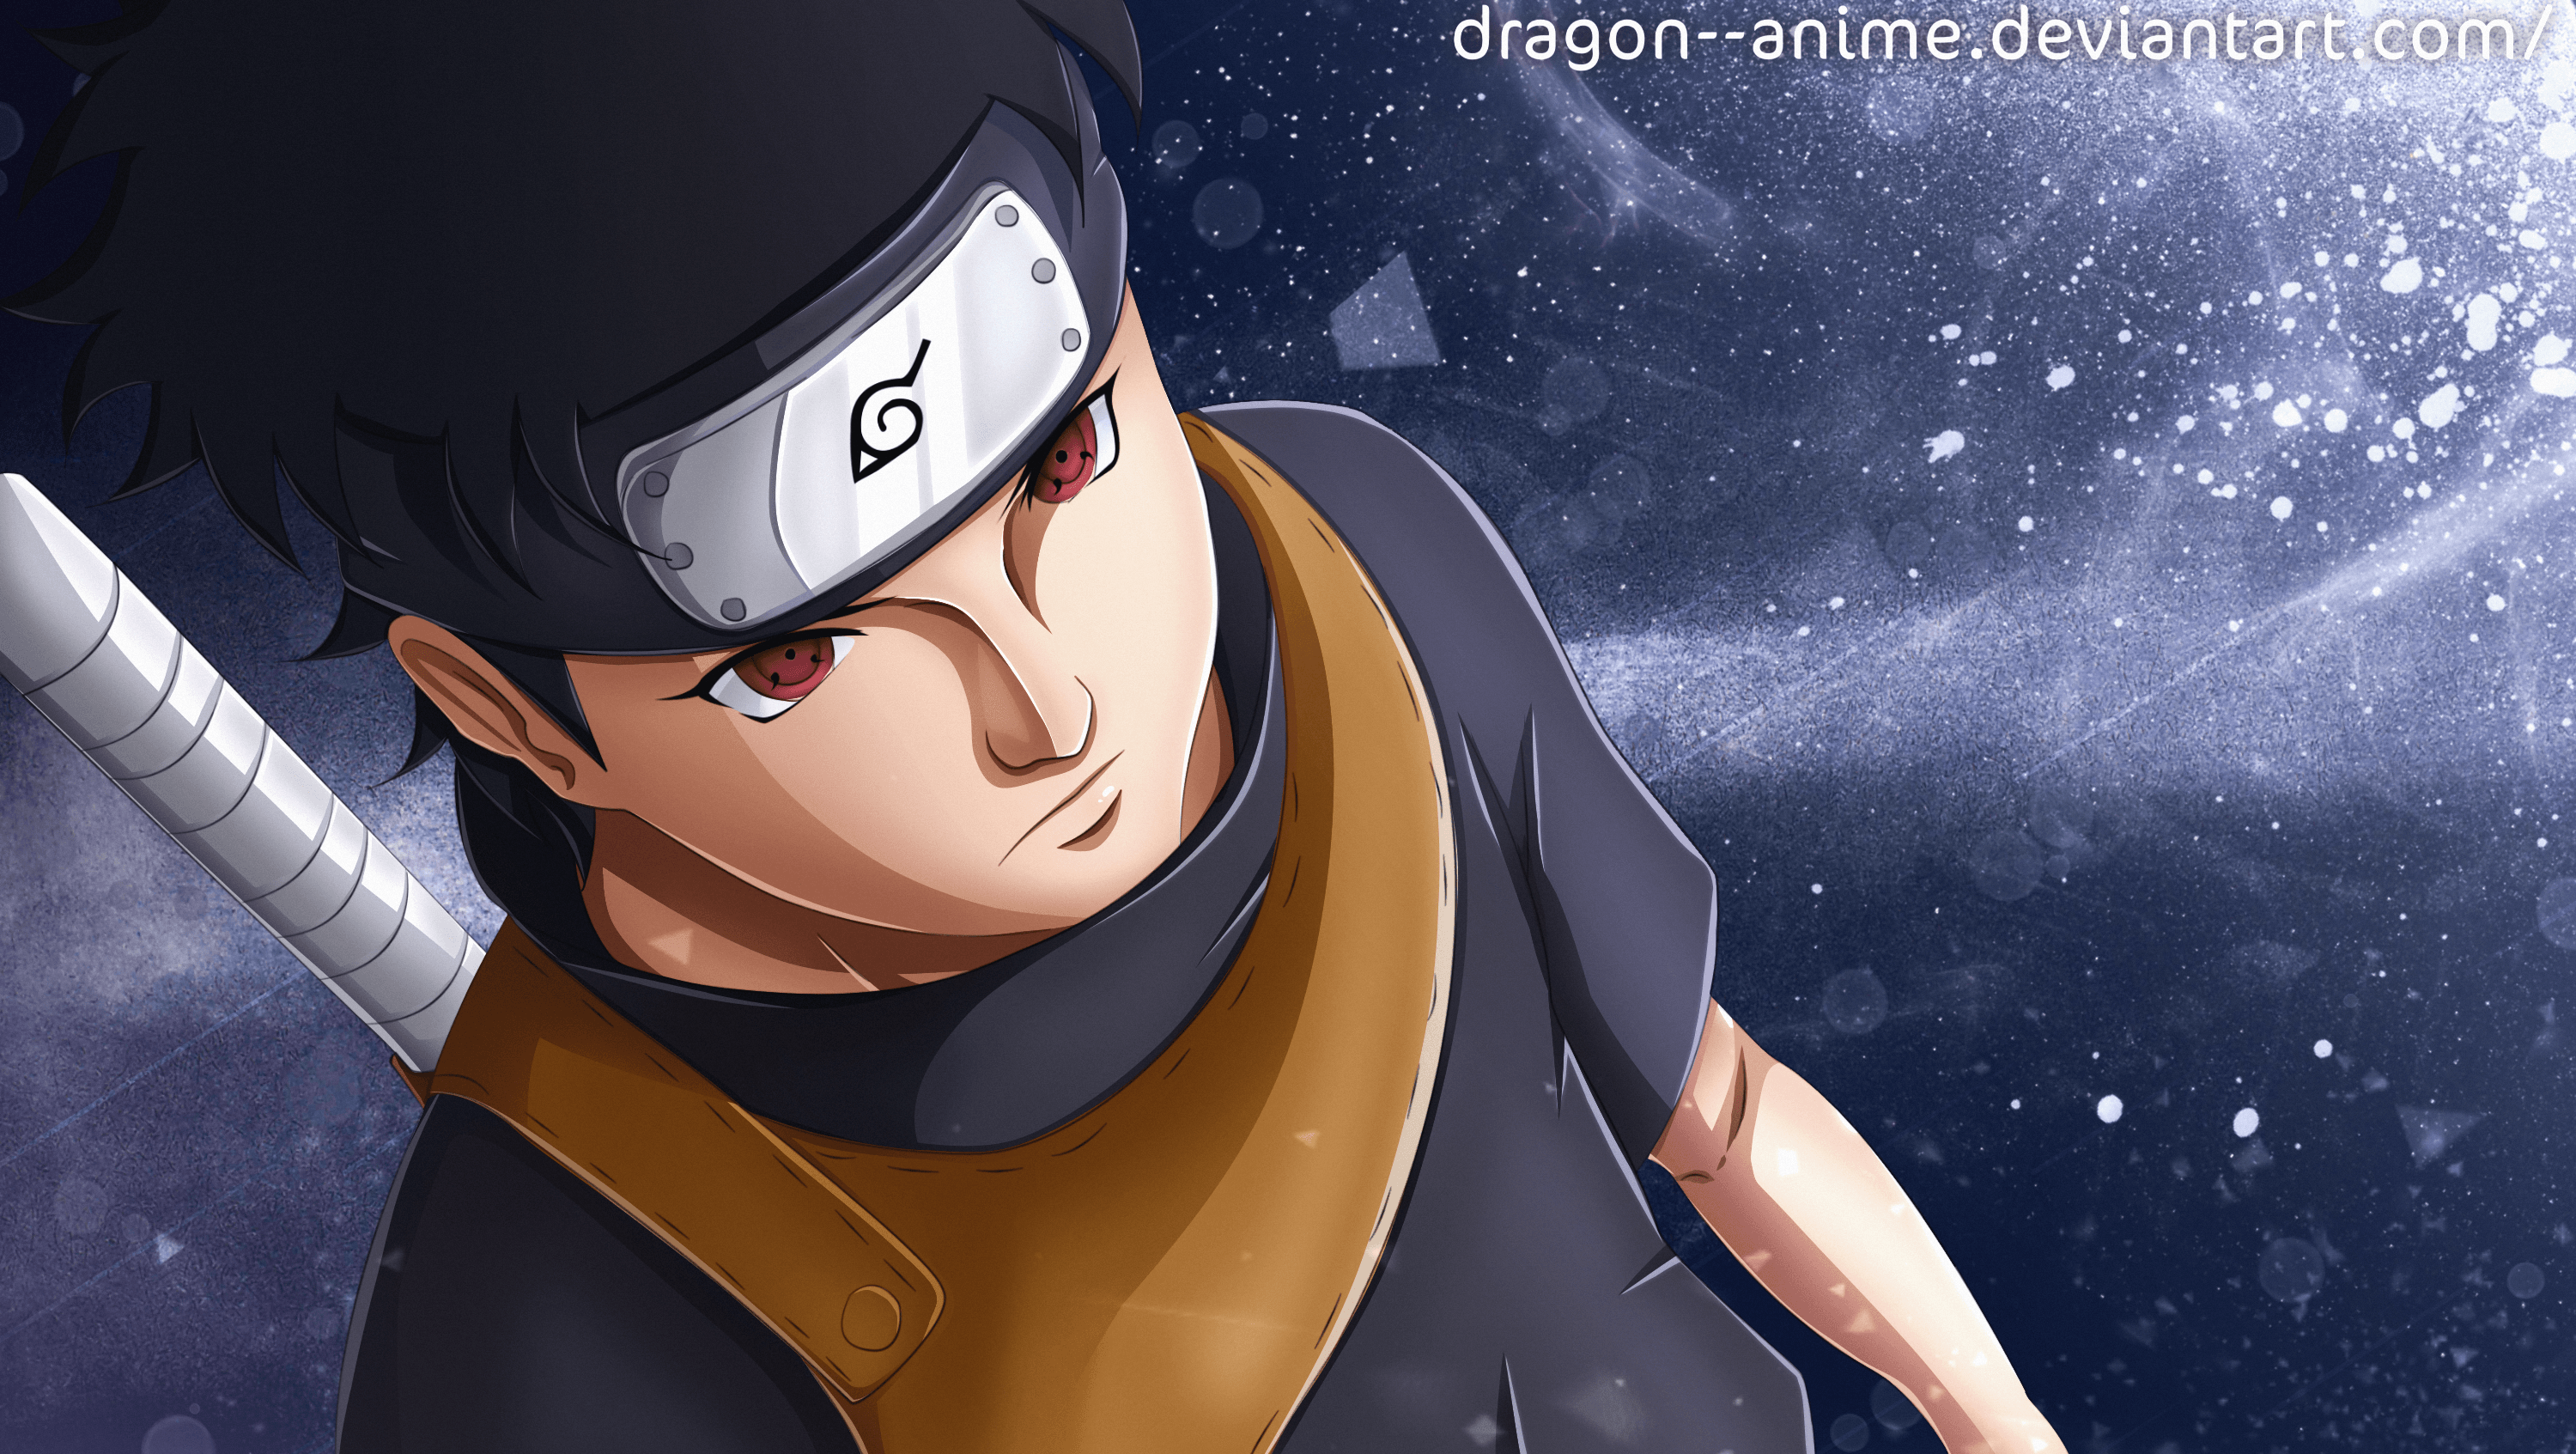 Shisui Uchiha wallpapers and backgrounds